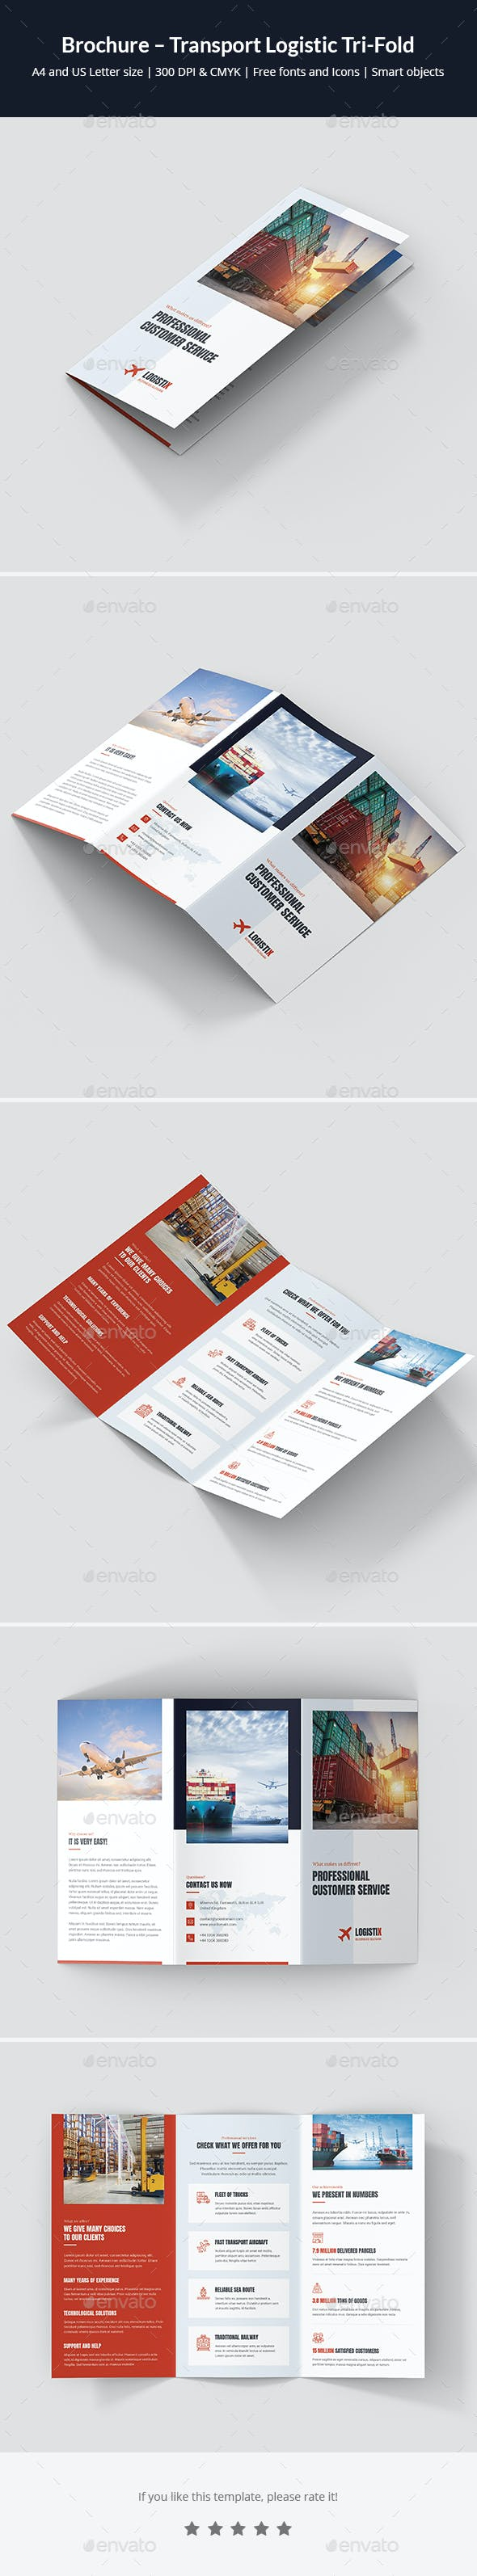 brochure transport logistic tri fold by artbart graphicriver